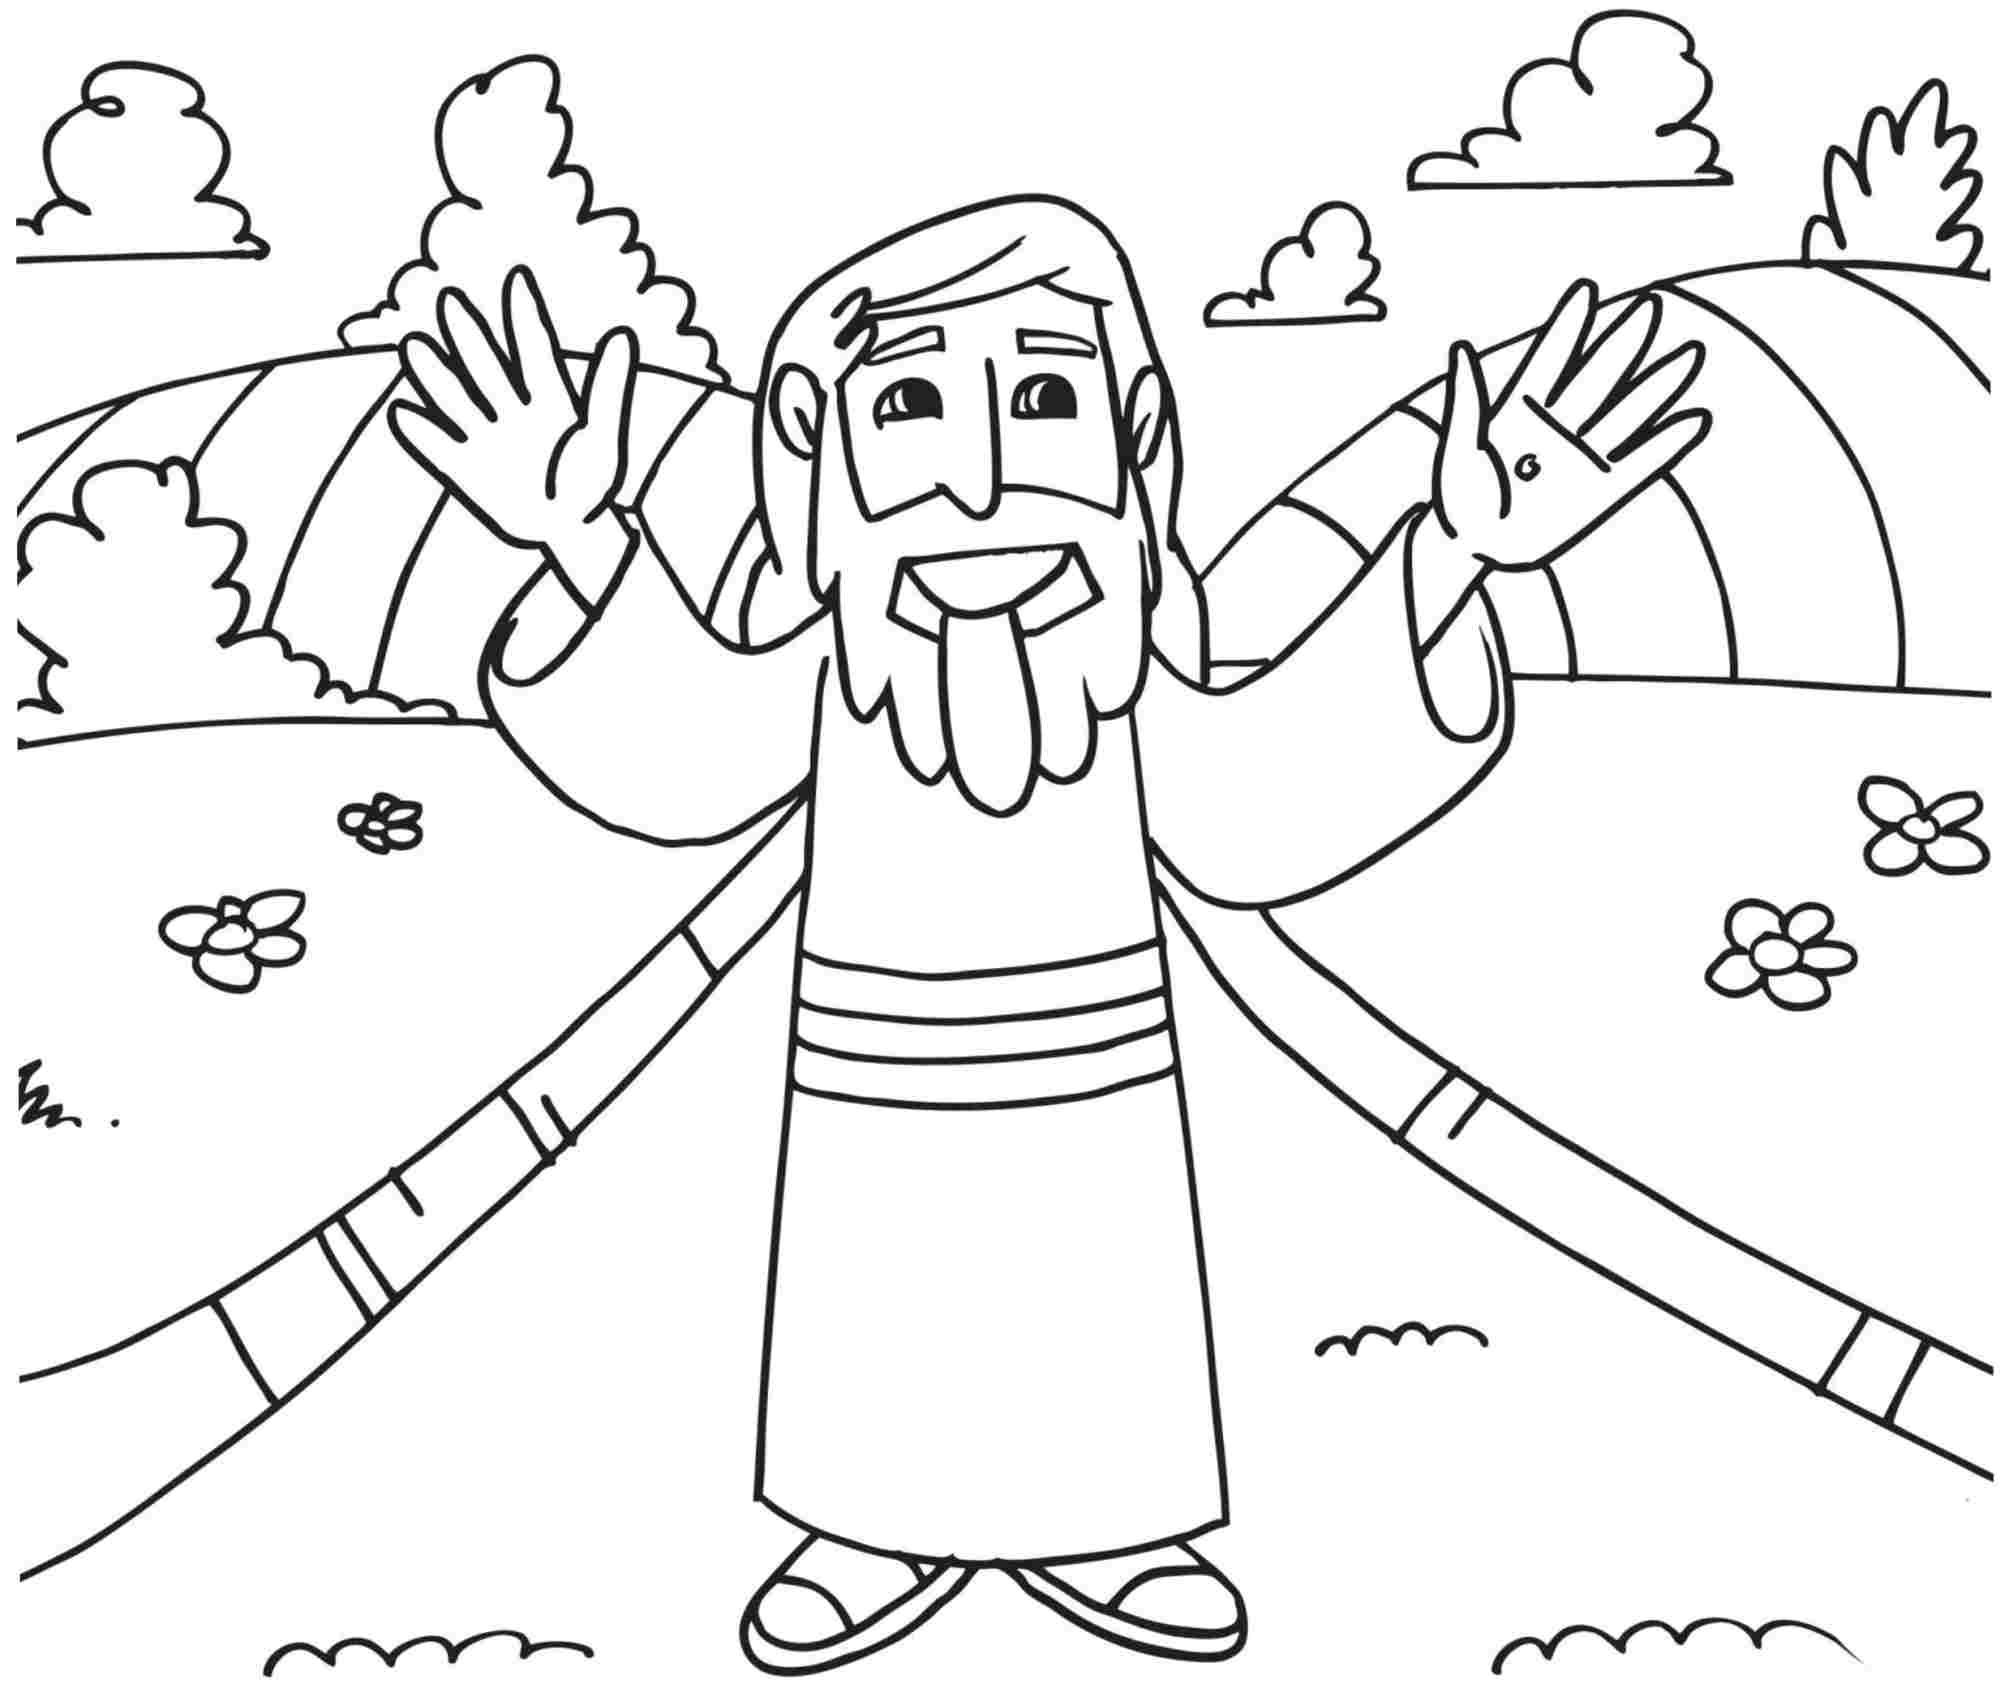 Free easter coloring pages for toddlers - Christian Easter Colouring Pages Free Printable For Little Kids